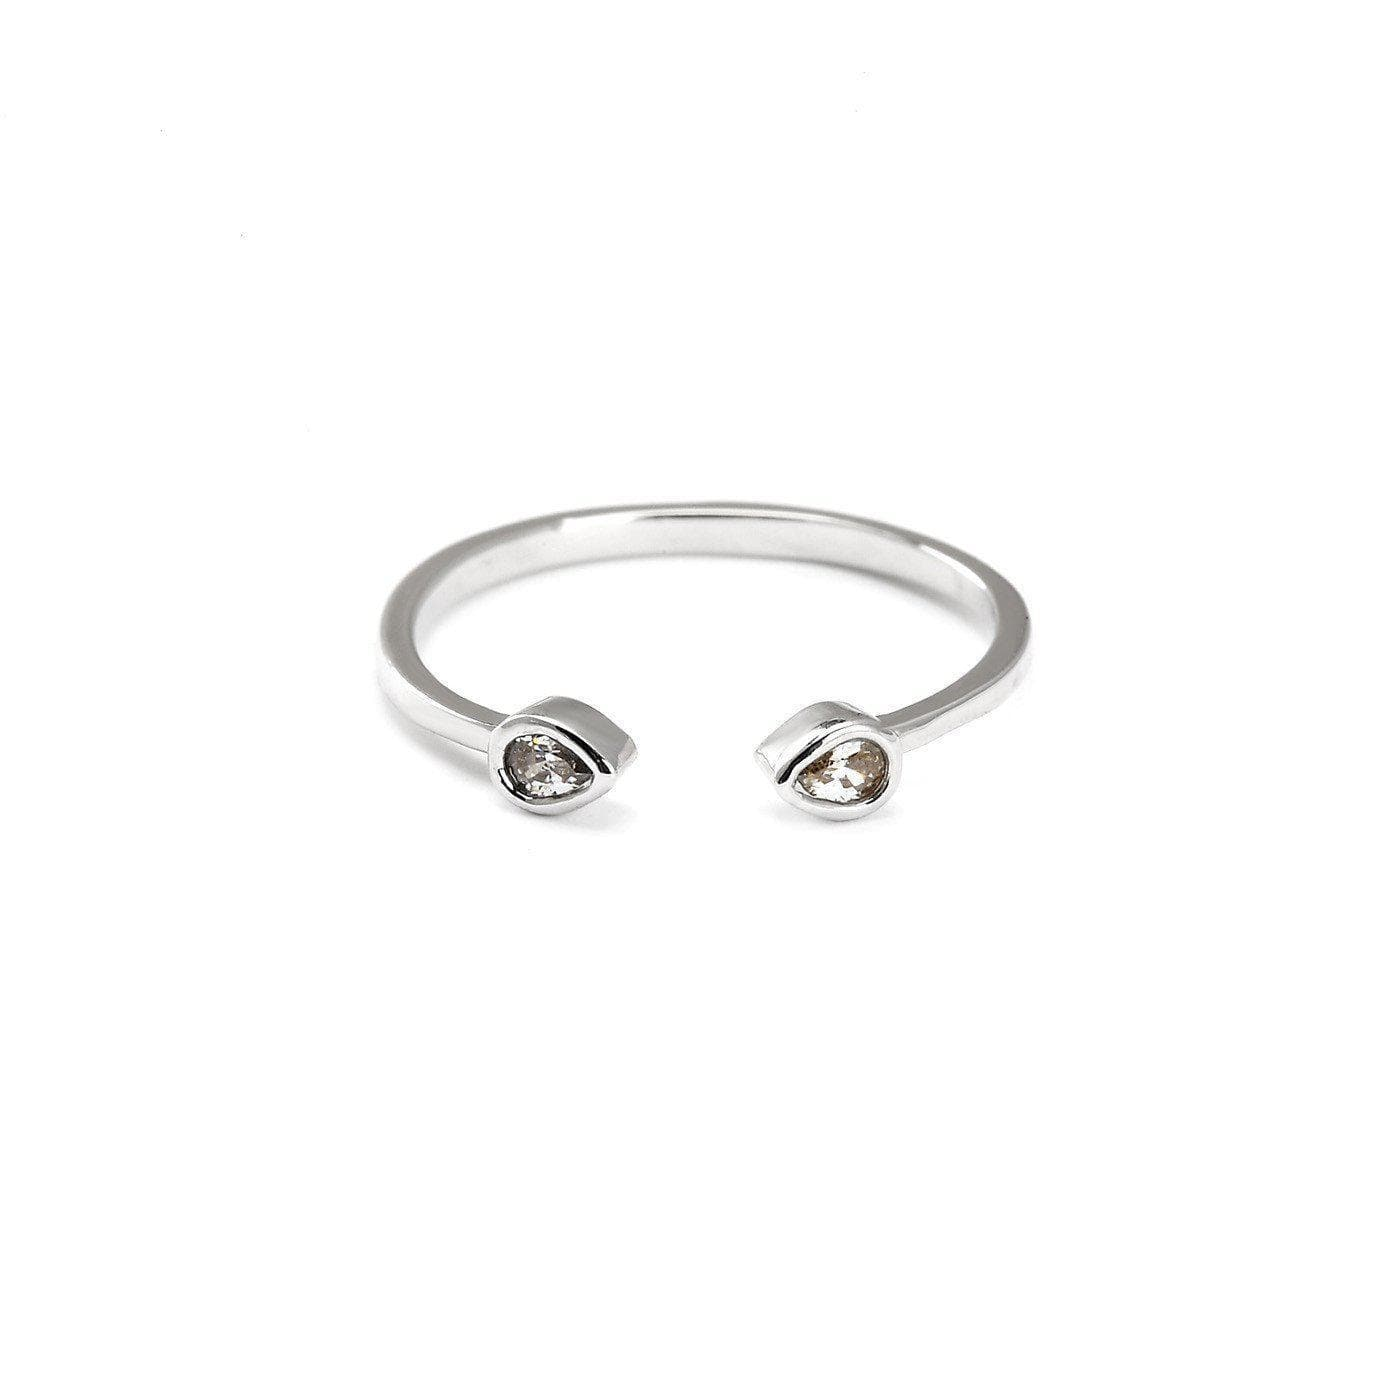 Adjustable Sleek Midi Ring-Blinglane